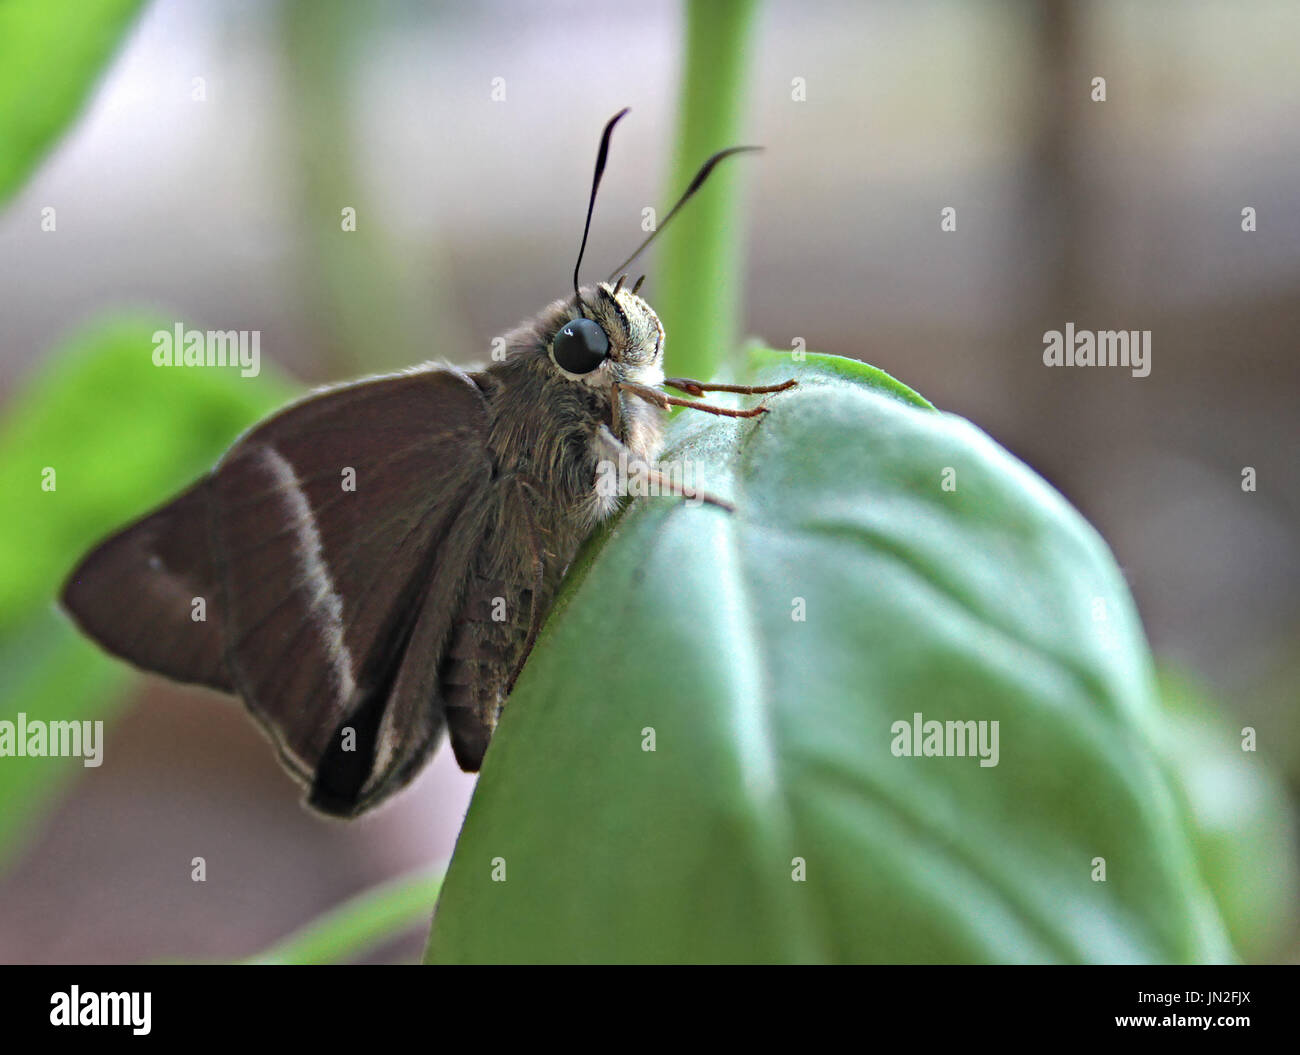 Common Banded Awl Butterfly - Stock Image